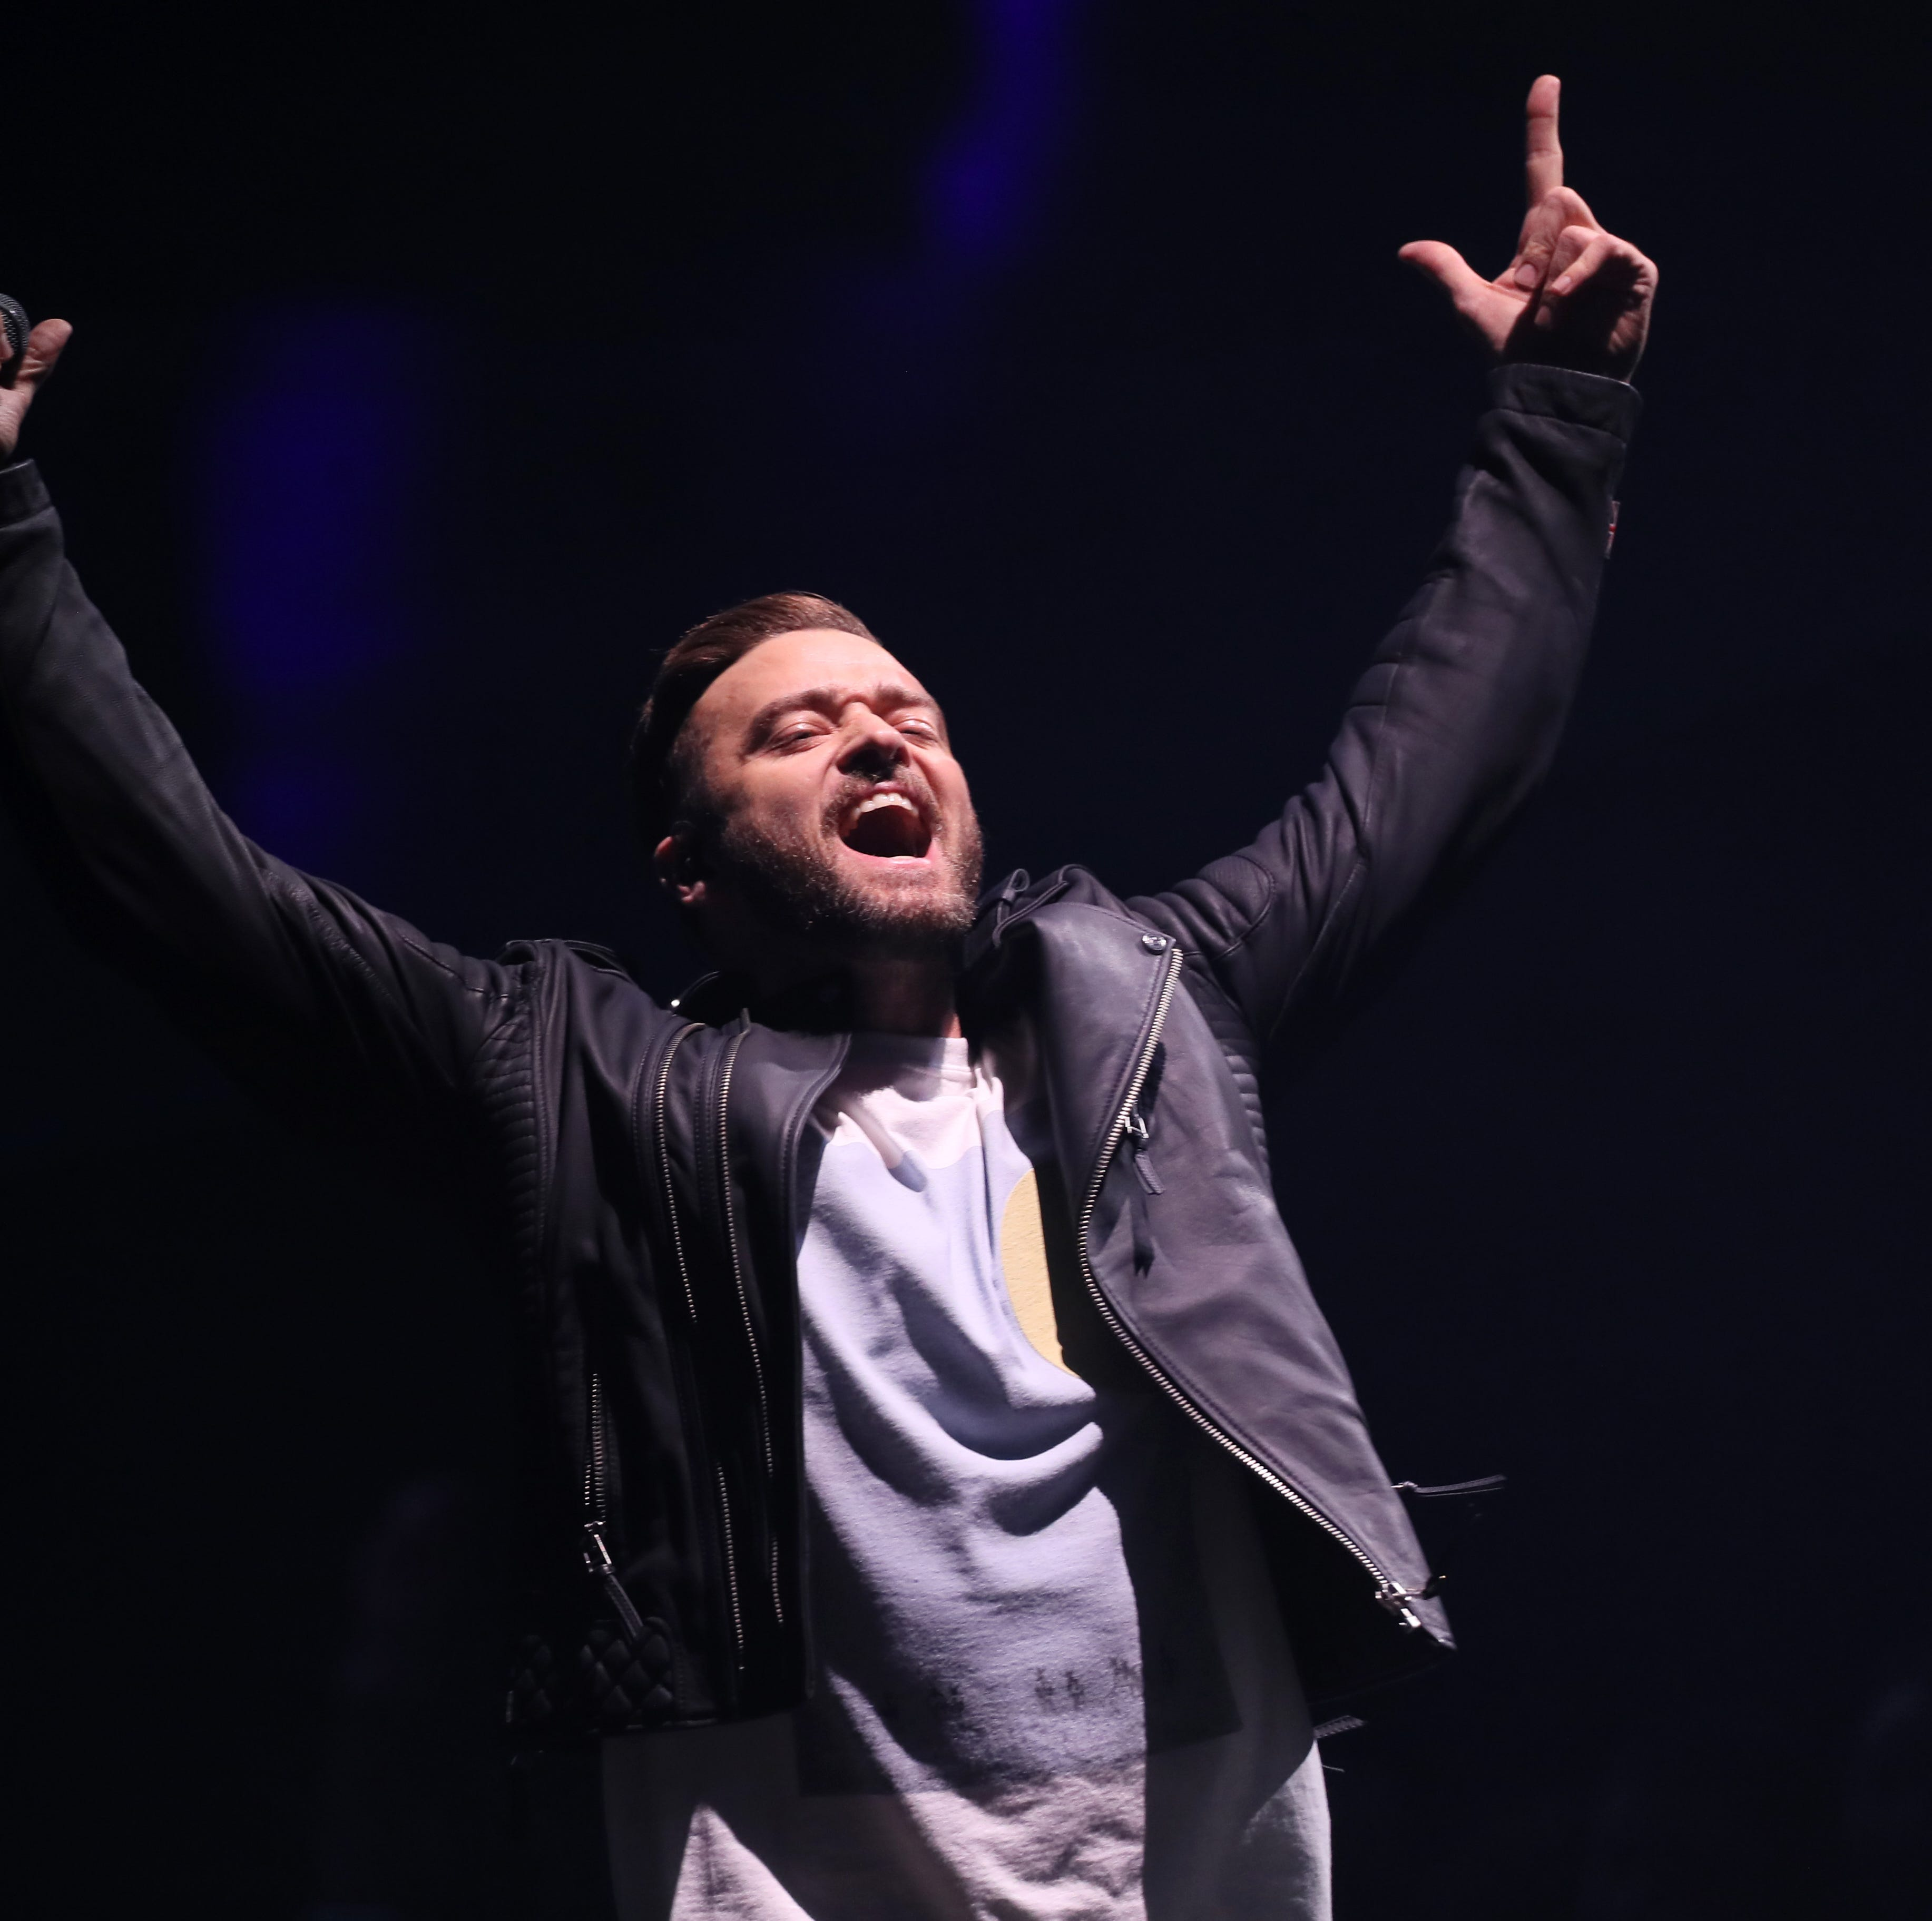 Justin Timberlake thrills 'M-Town' with confident, charismatic performance at FedExForum